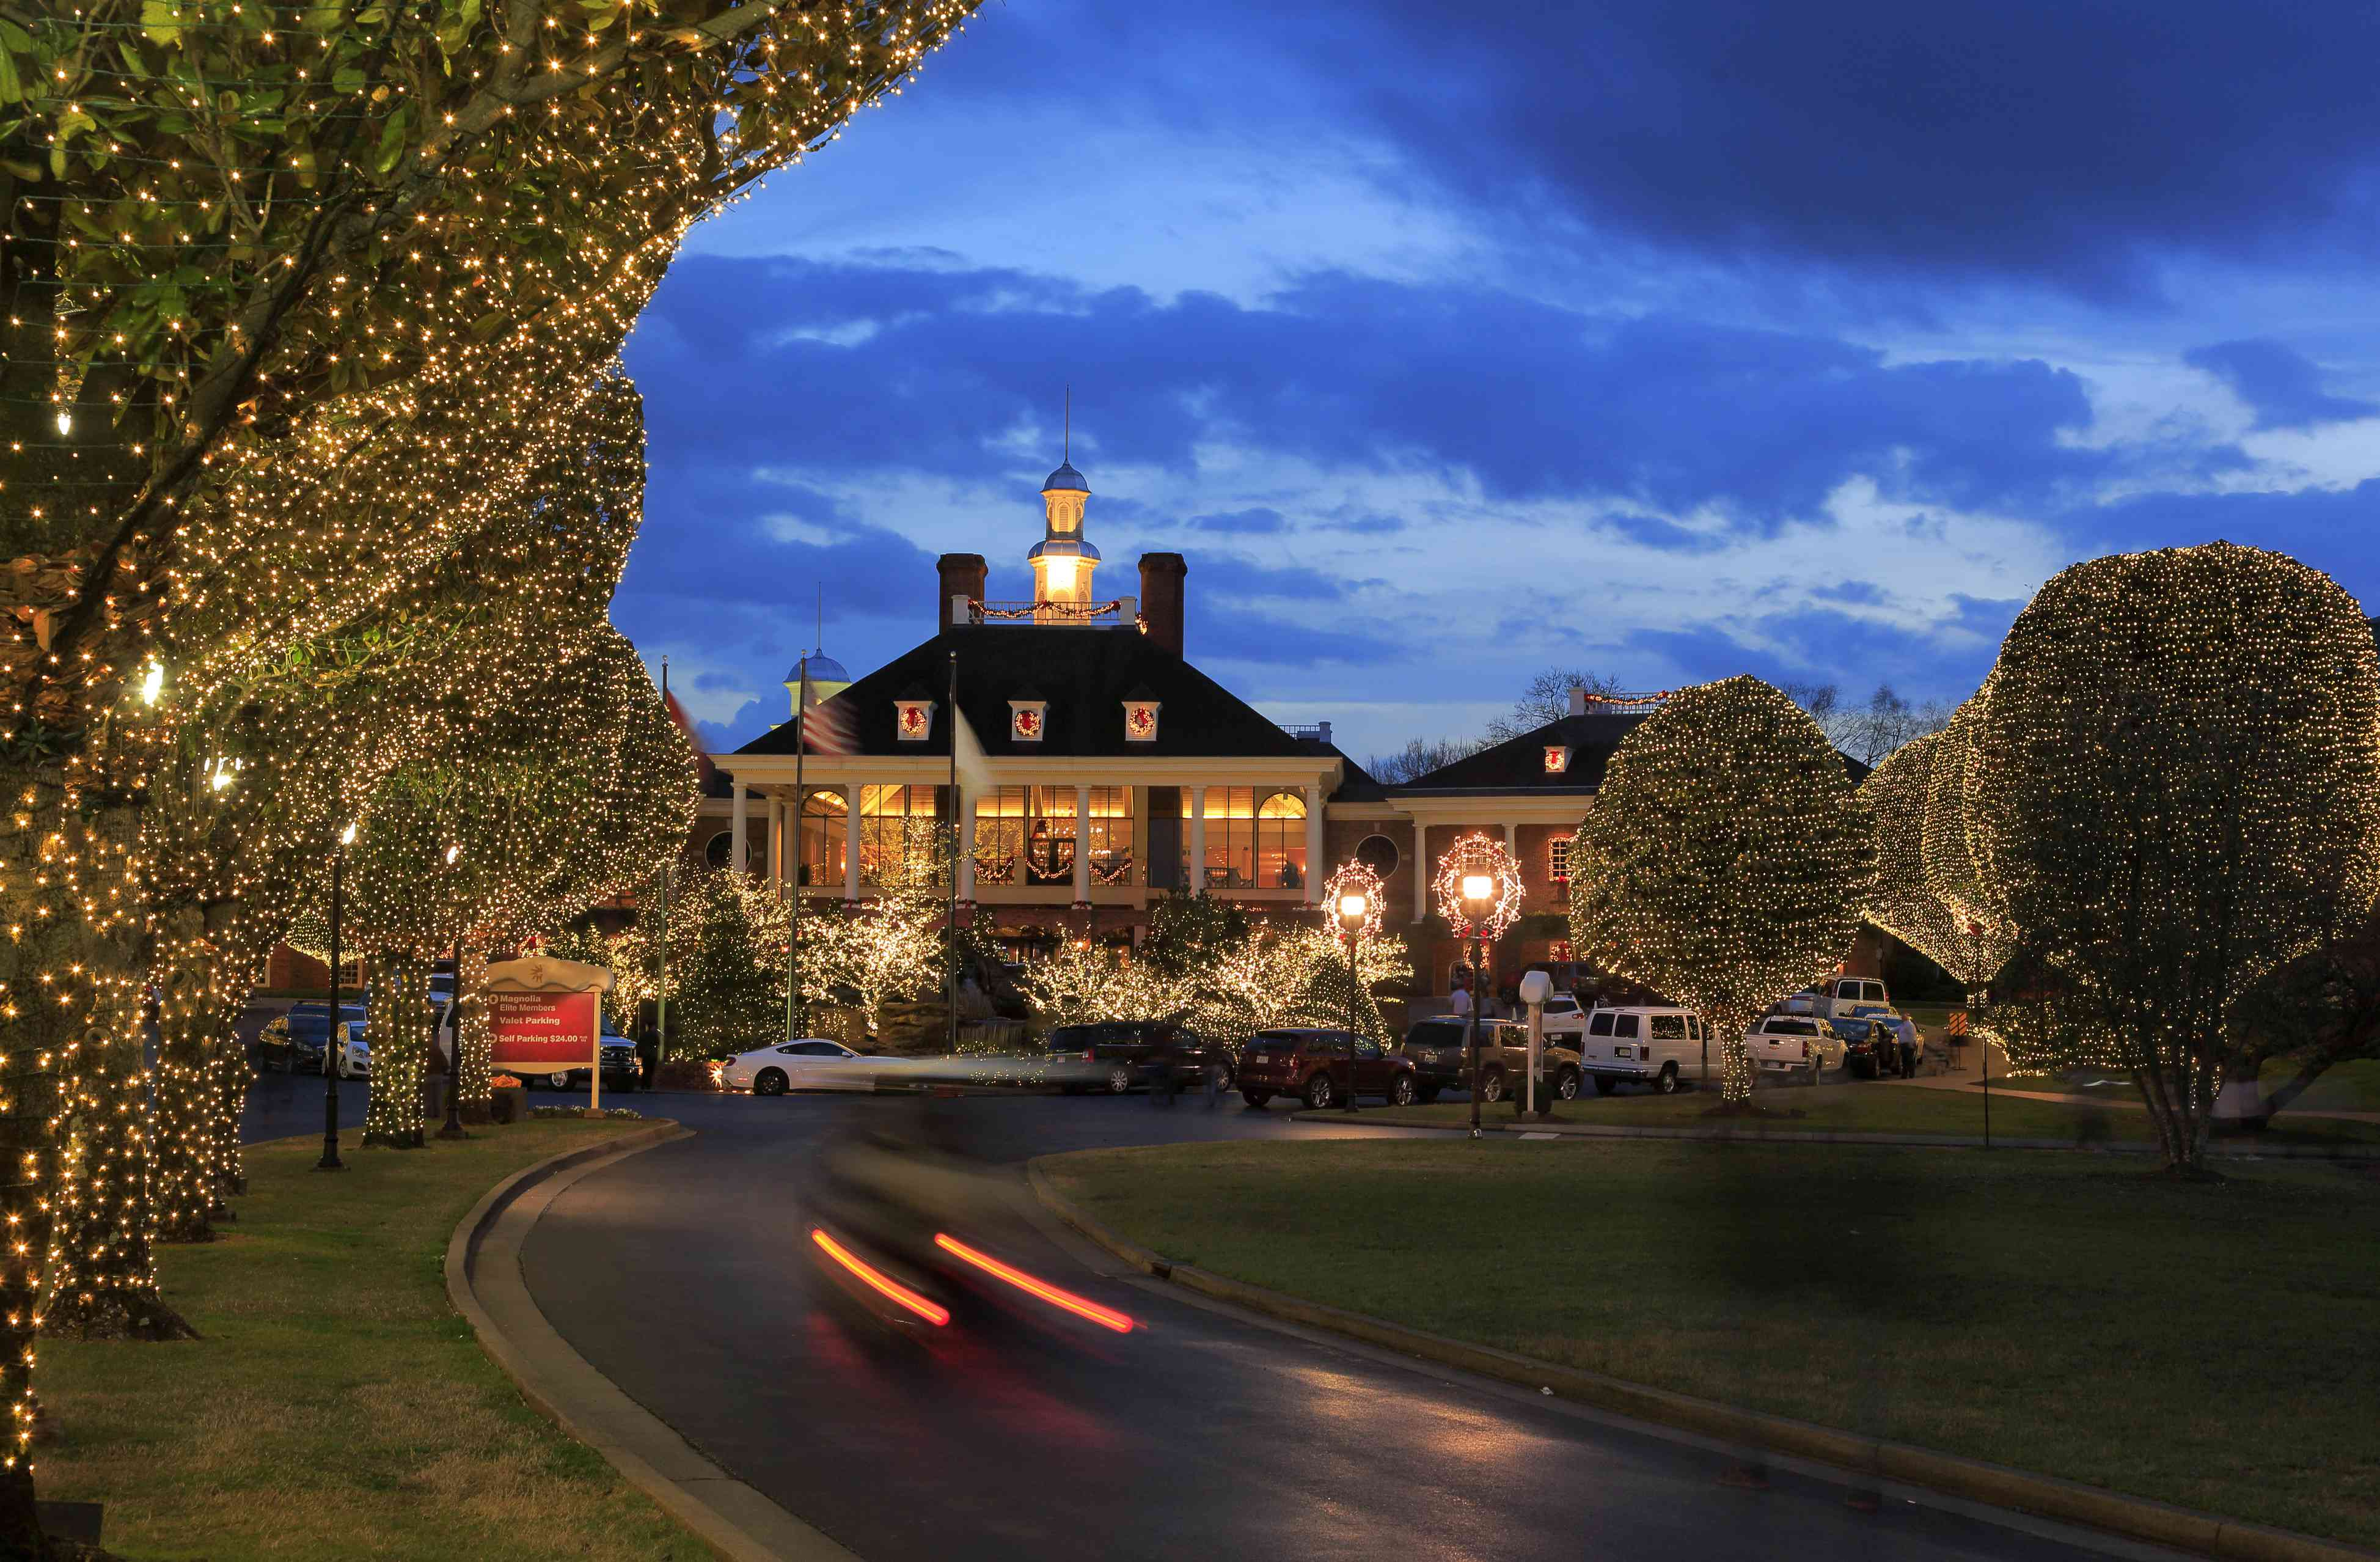 Gaylord Opryland Resort and Convention Center